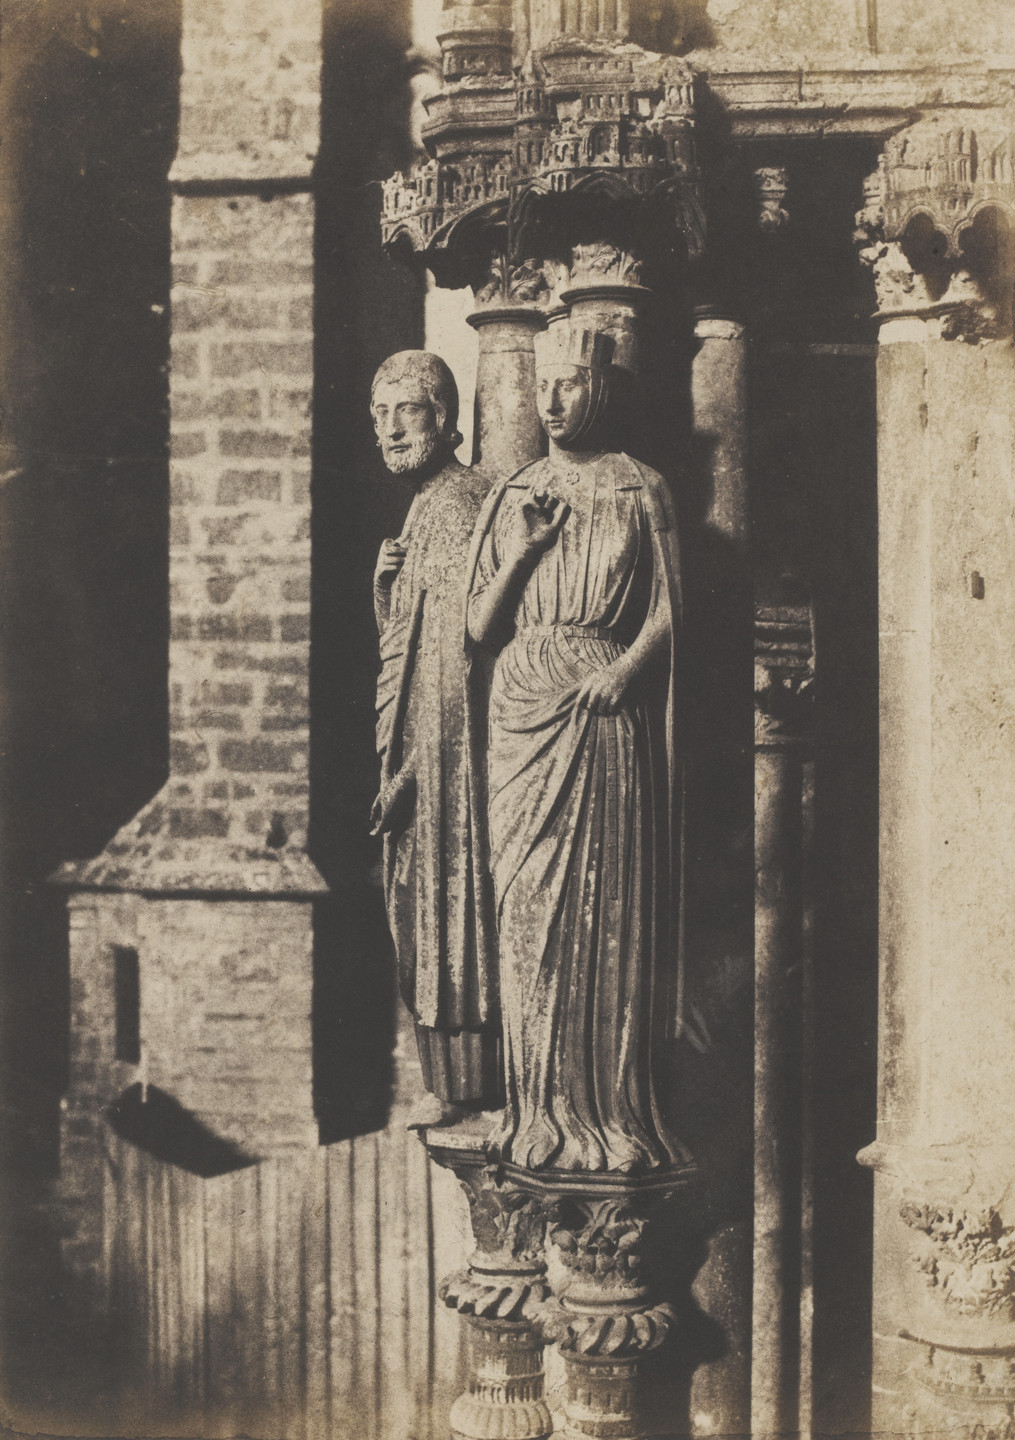 Charles Marville. Columnar Figures of the North Porch, Chartres Cathedral. 1853-54